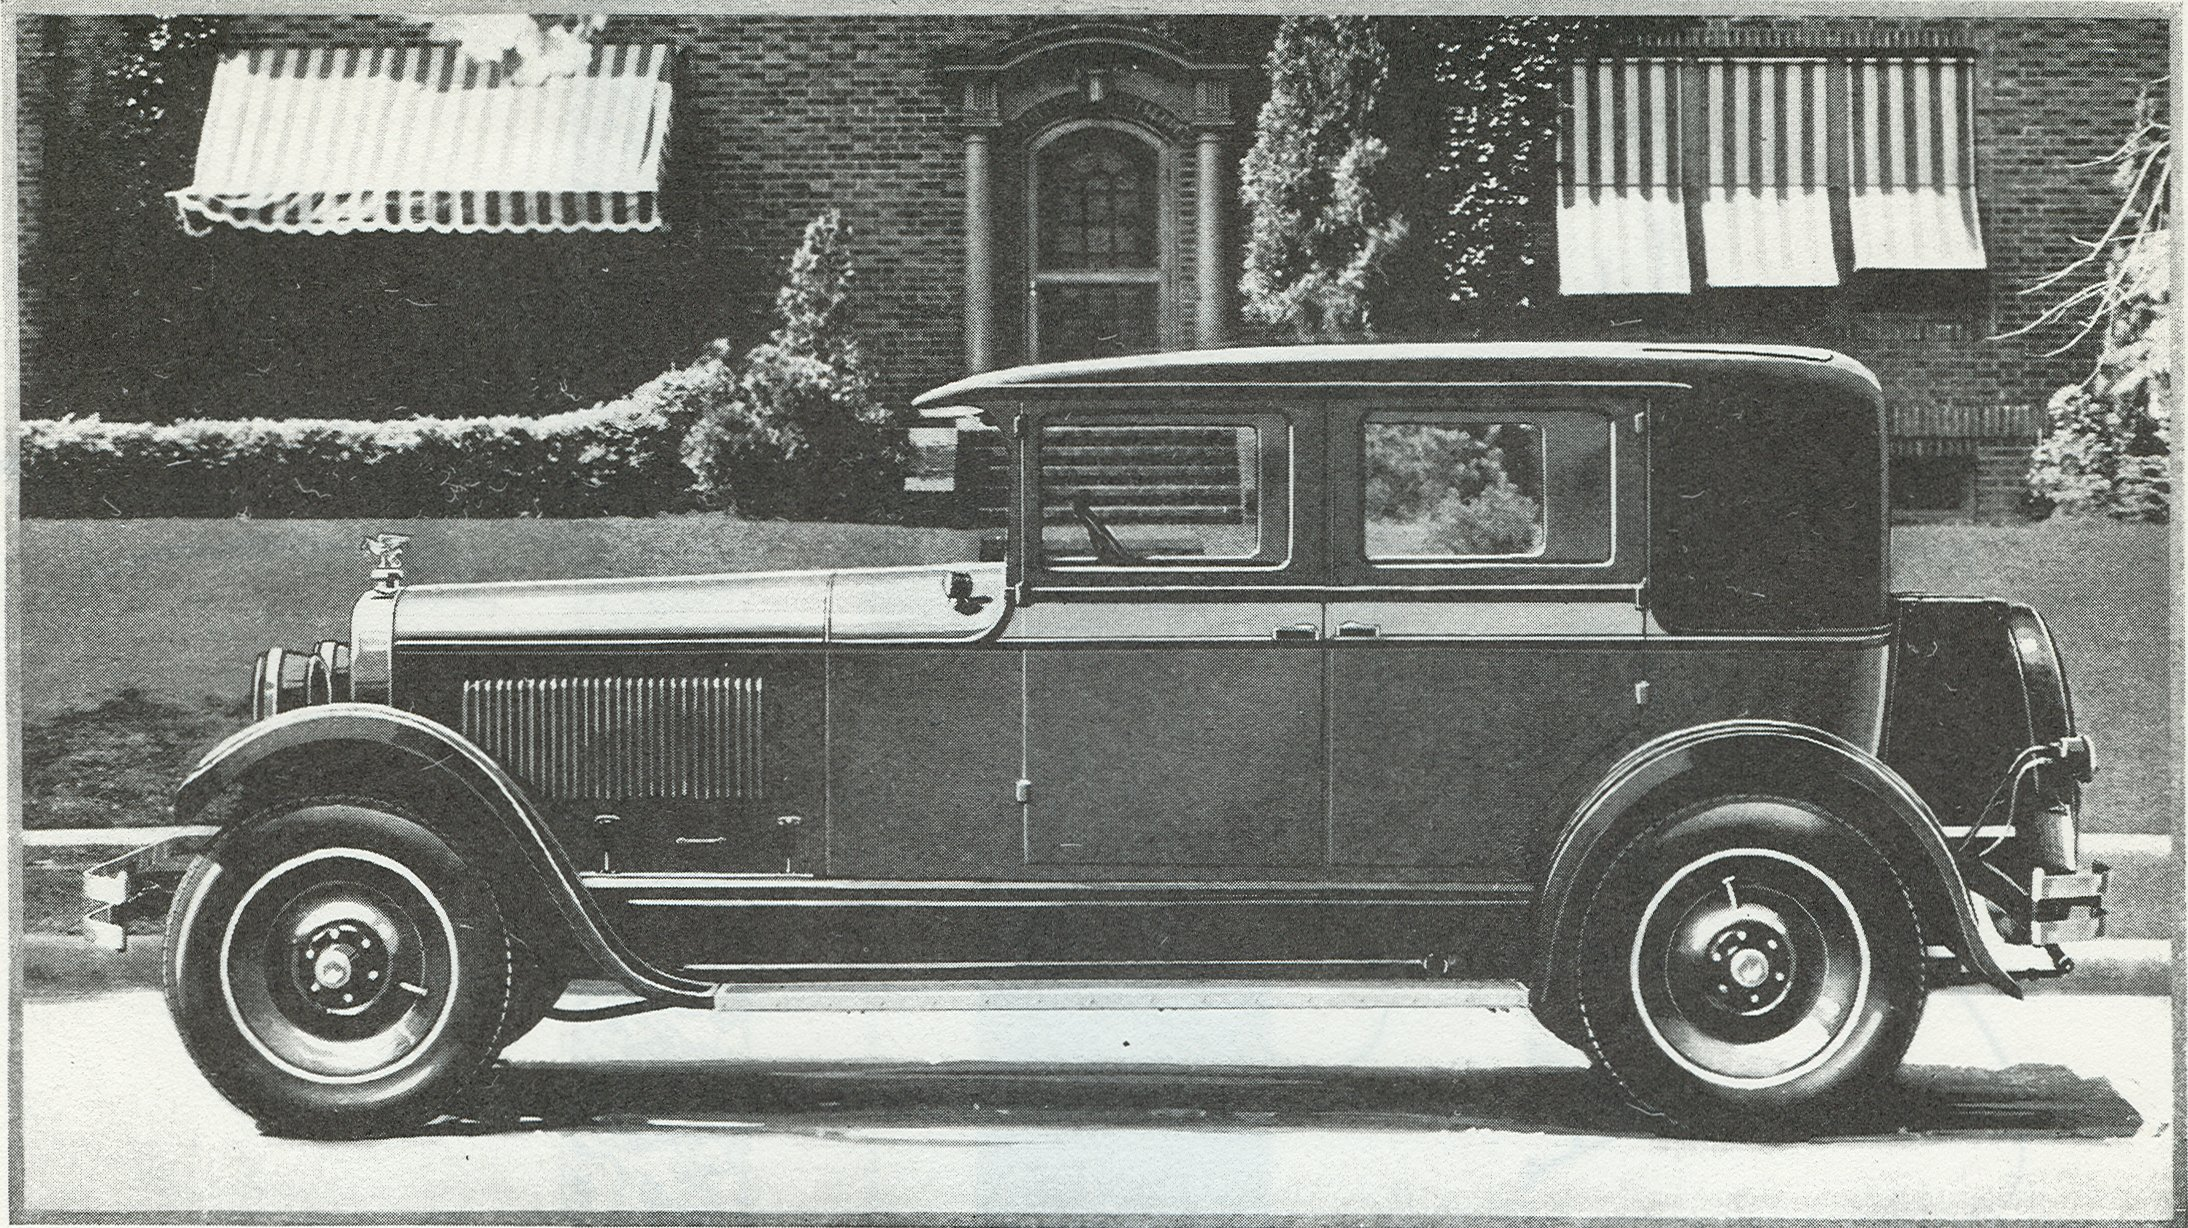 The new entry for 1927 was the Custom Brougham - Body by Lubitz